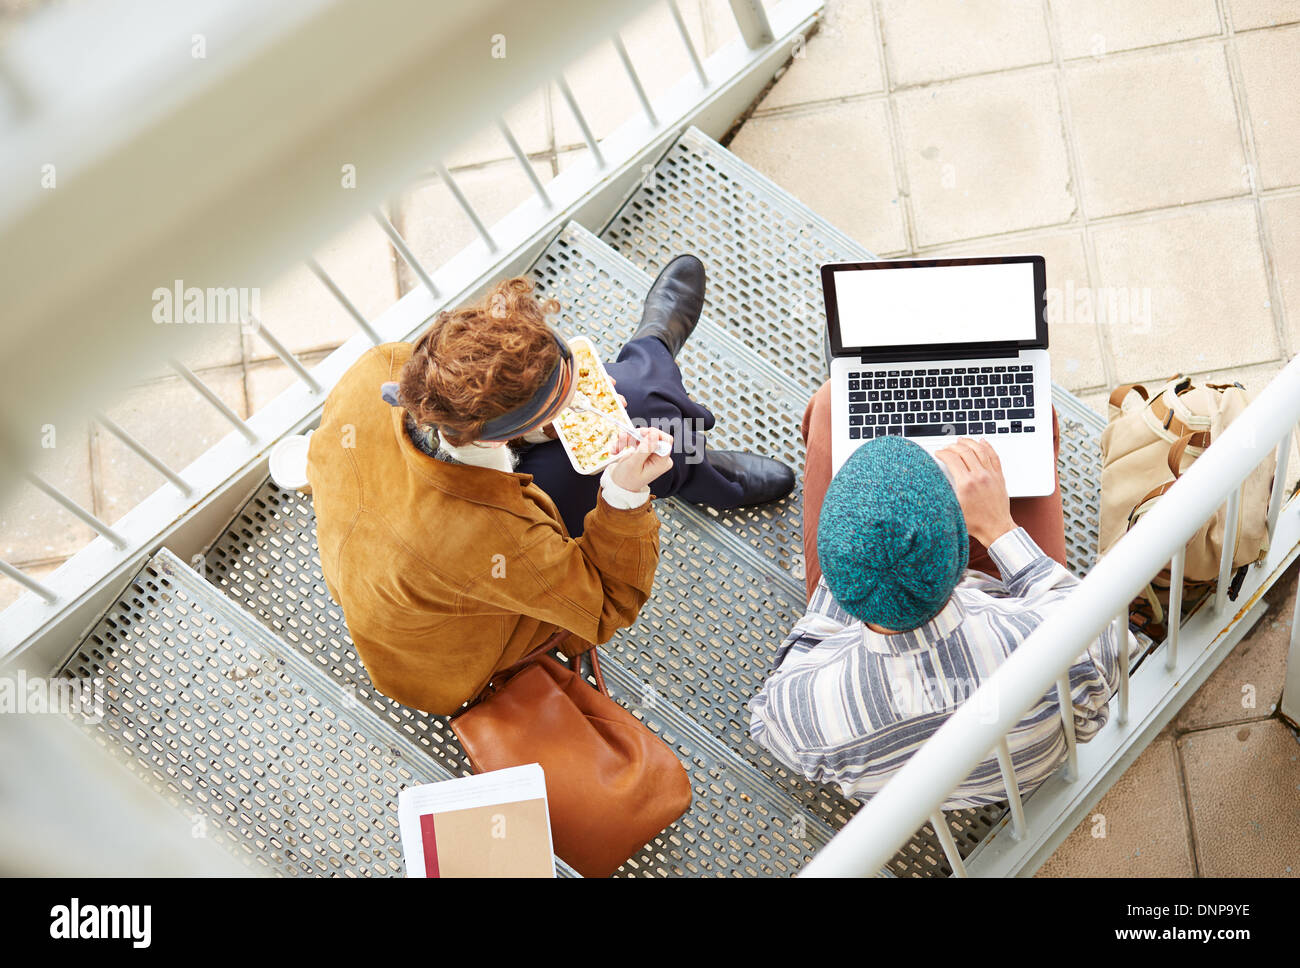 Hipster couple using computer and eating lunch sitting in stairs at university campus - Stock Image